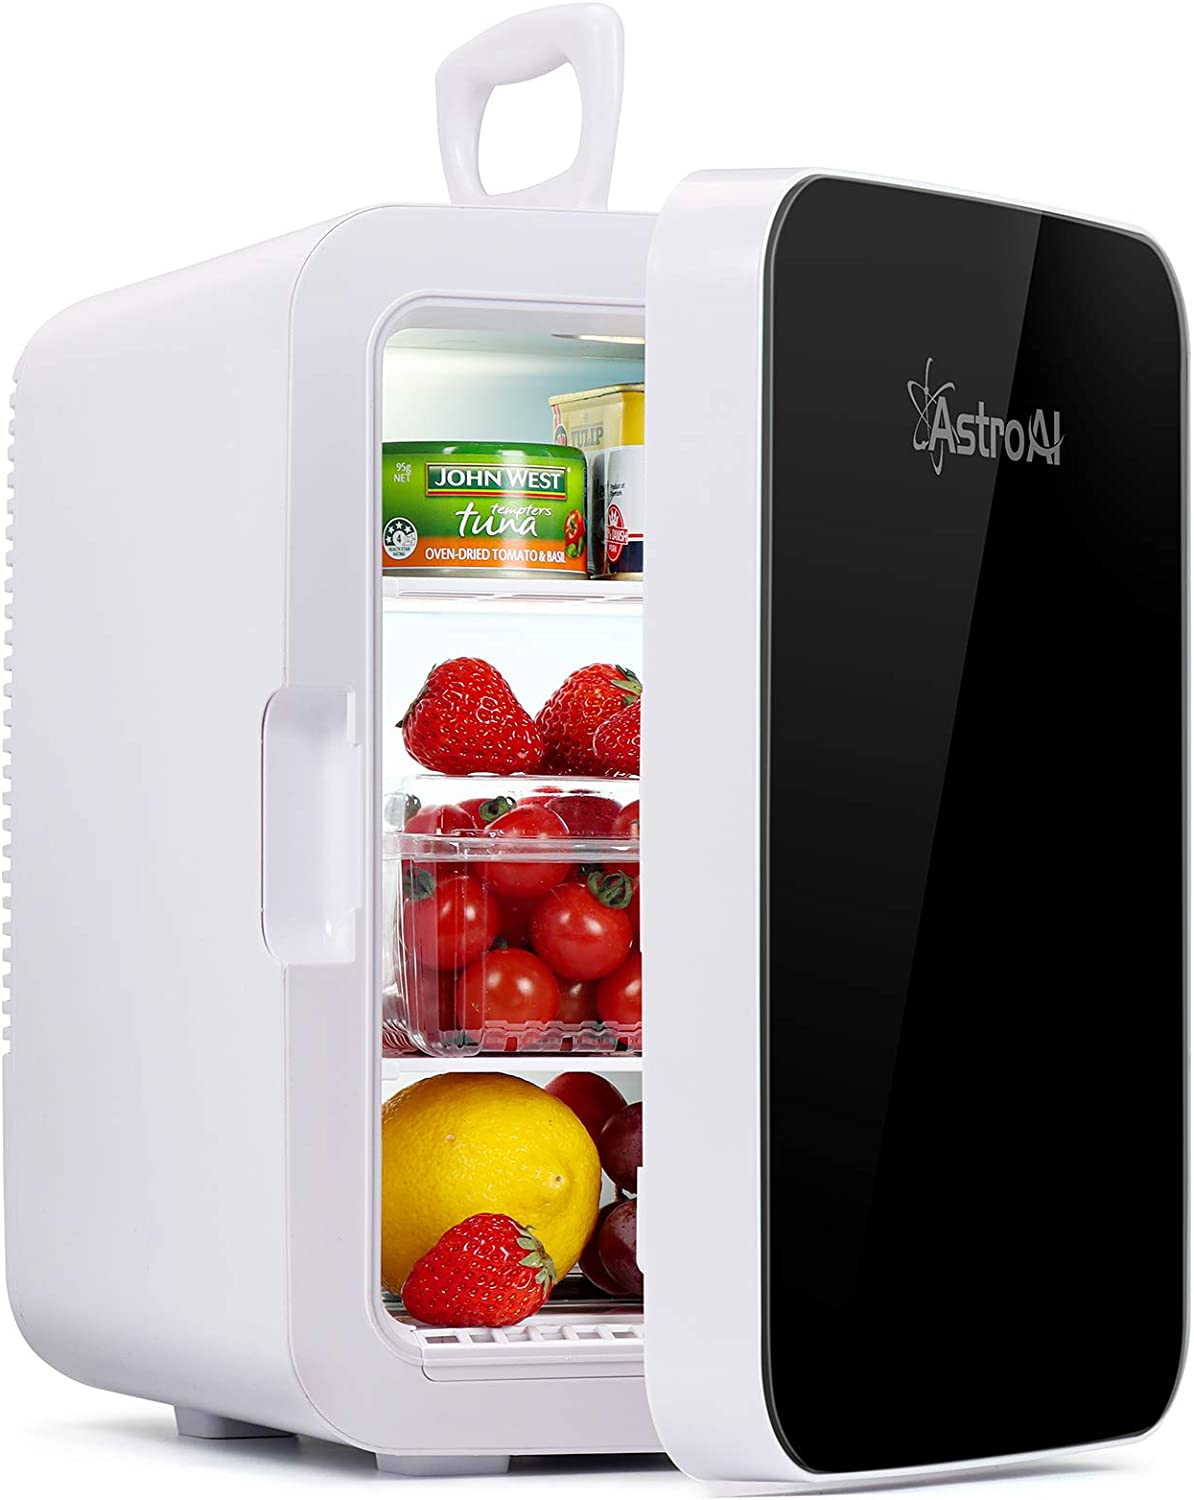 AstroAI Mini Fridge,10 Liter Compact Refrigerator Mini Cooler Warmer with AC/DC Power,Thermoelectric Skincare Fridge Great for Car,Bedroom,Office,Dorm,Travel(Black): Appliances